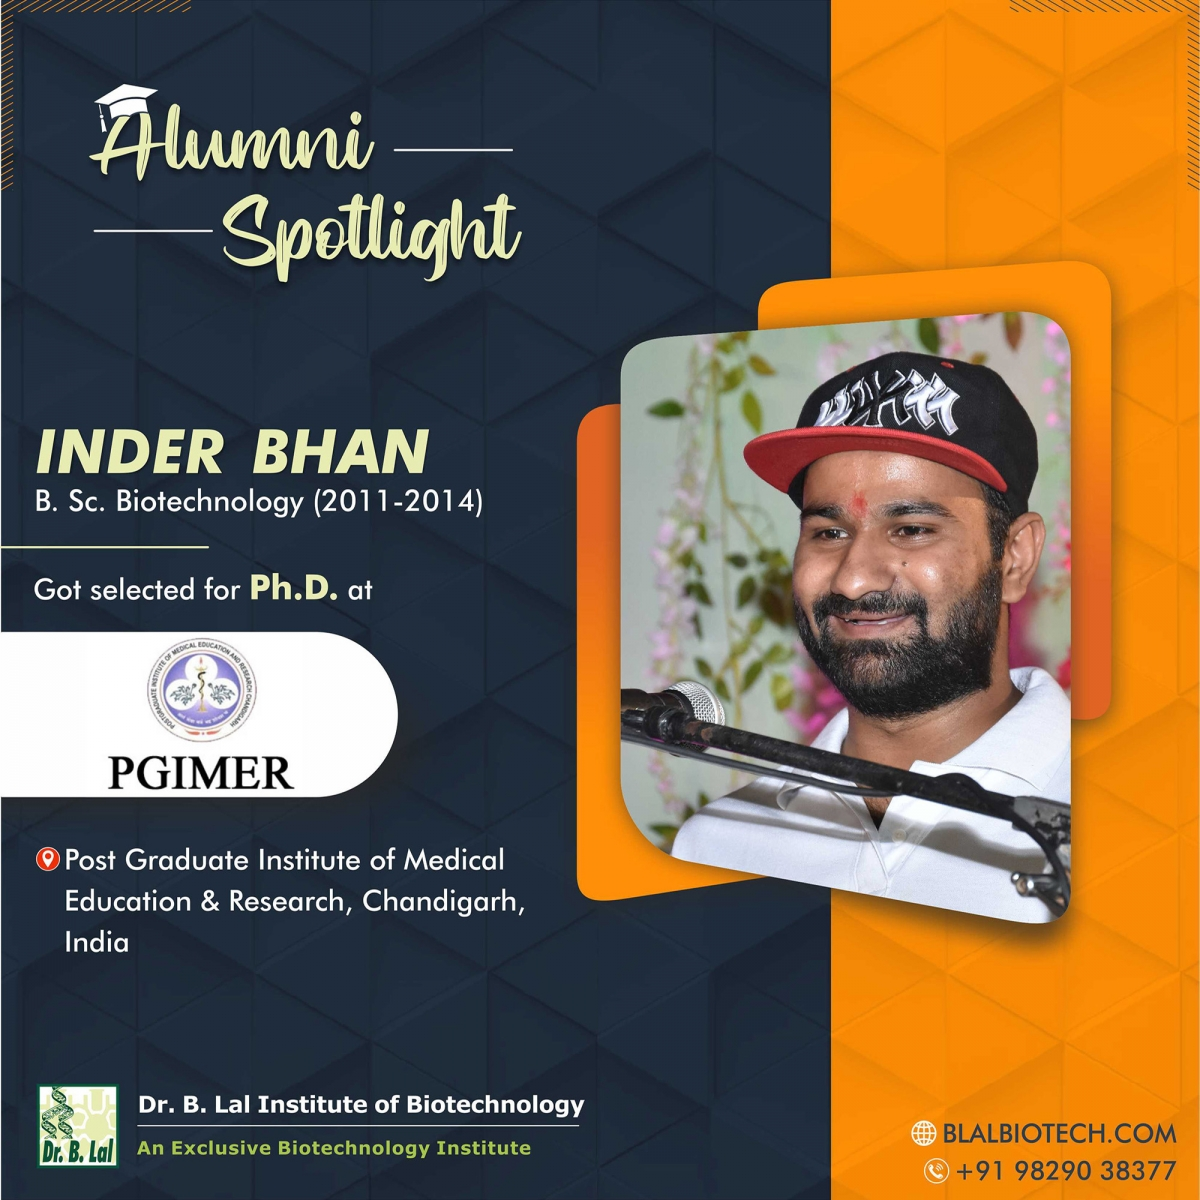 Mr. Inder Bhan | Selected for Ph.D. at Post Graduate Institute of Medical Education and Research, Chandigarh, India